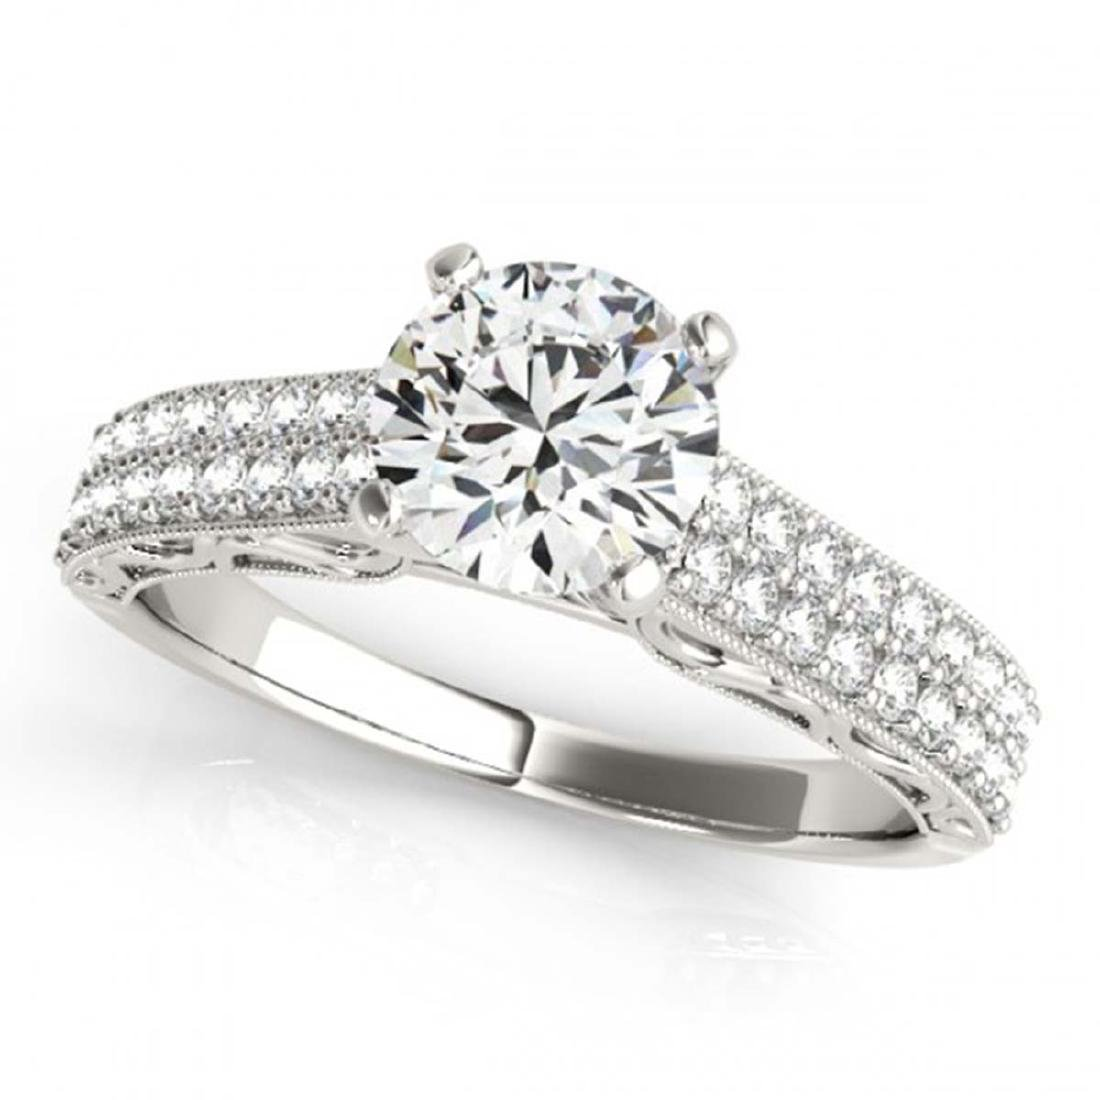 1.91 CTW Certified VS/SI Diamond Solitaire Antique Ring